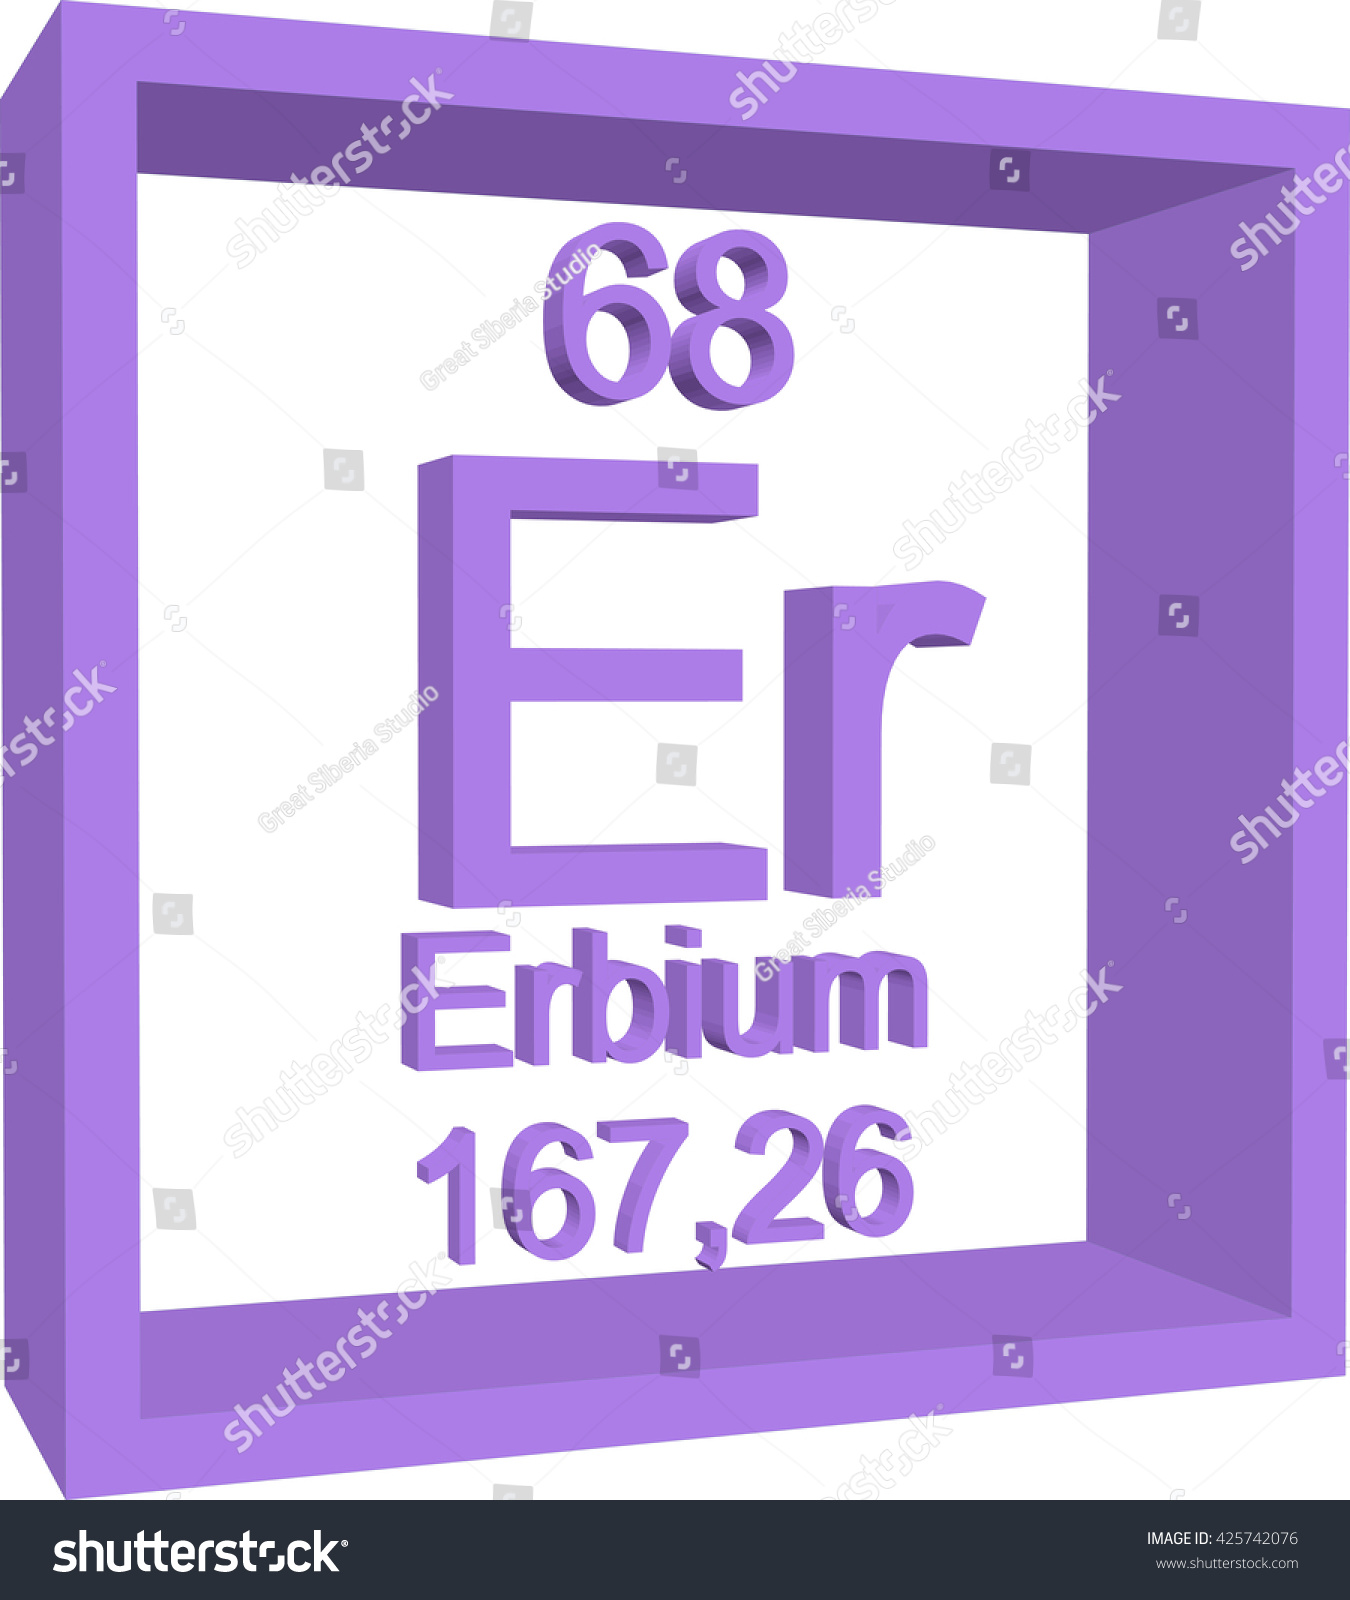 Er element periodic table images periodic table images erbium er element periodic table maytag quiet series 300 control periodic table elements erbium stock vector gamestrikefo Image collections